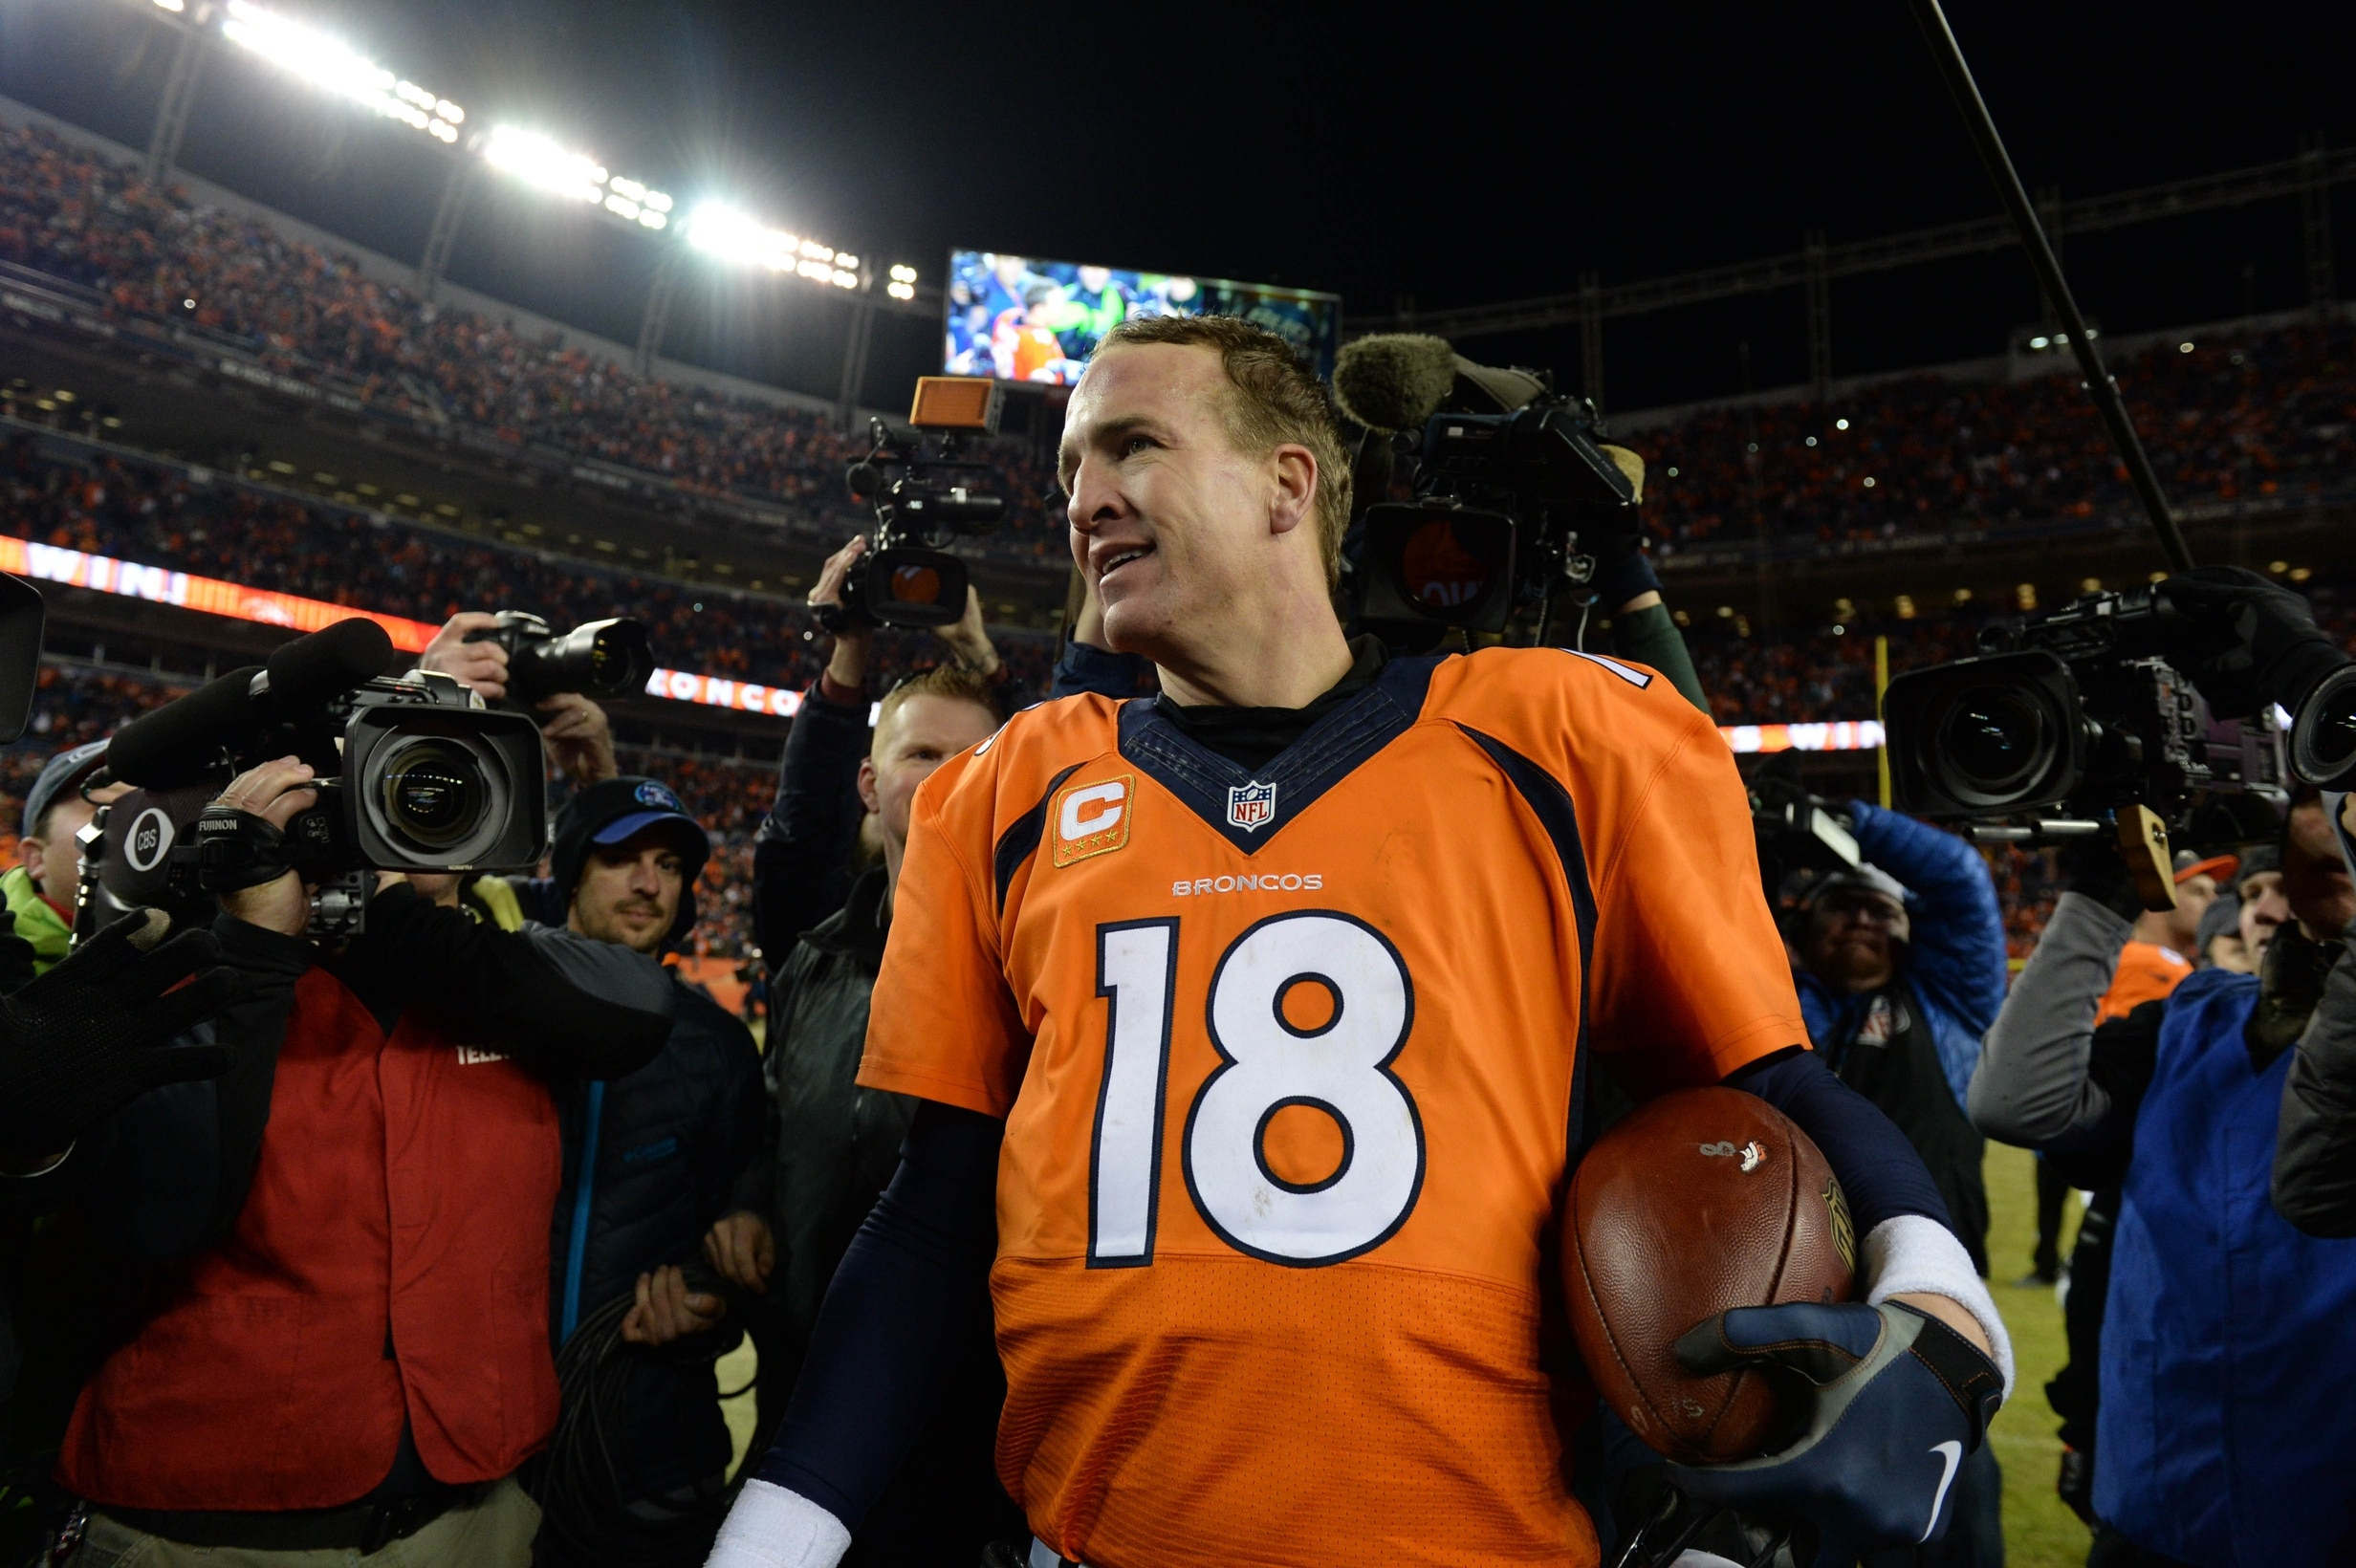 Jan 3, 2016; Denver, CO, USA; Denver Broncos quarterback Peyton Manning (18) celebrates winning following the game against the San Diego Chargers at Sports Authority Field at Mile High. The Broncos defeated the Chargers 27-20. Mandatory Credit: Ron Chenoy-USA TODAY Sports